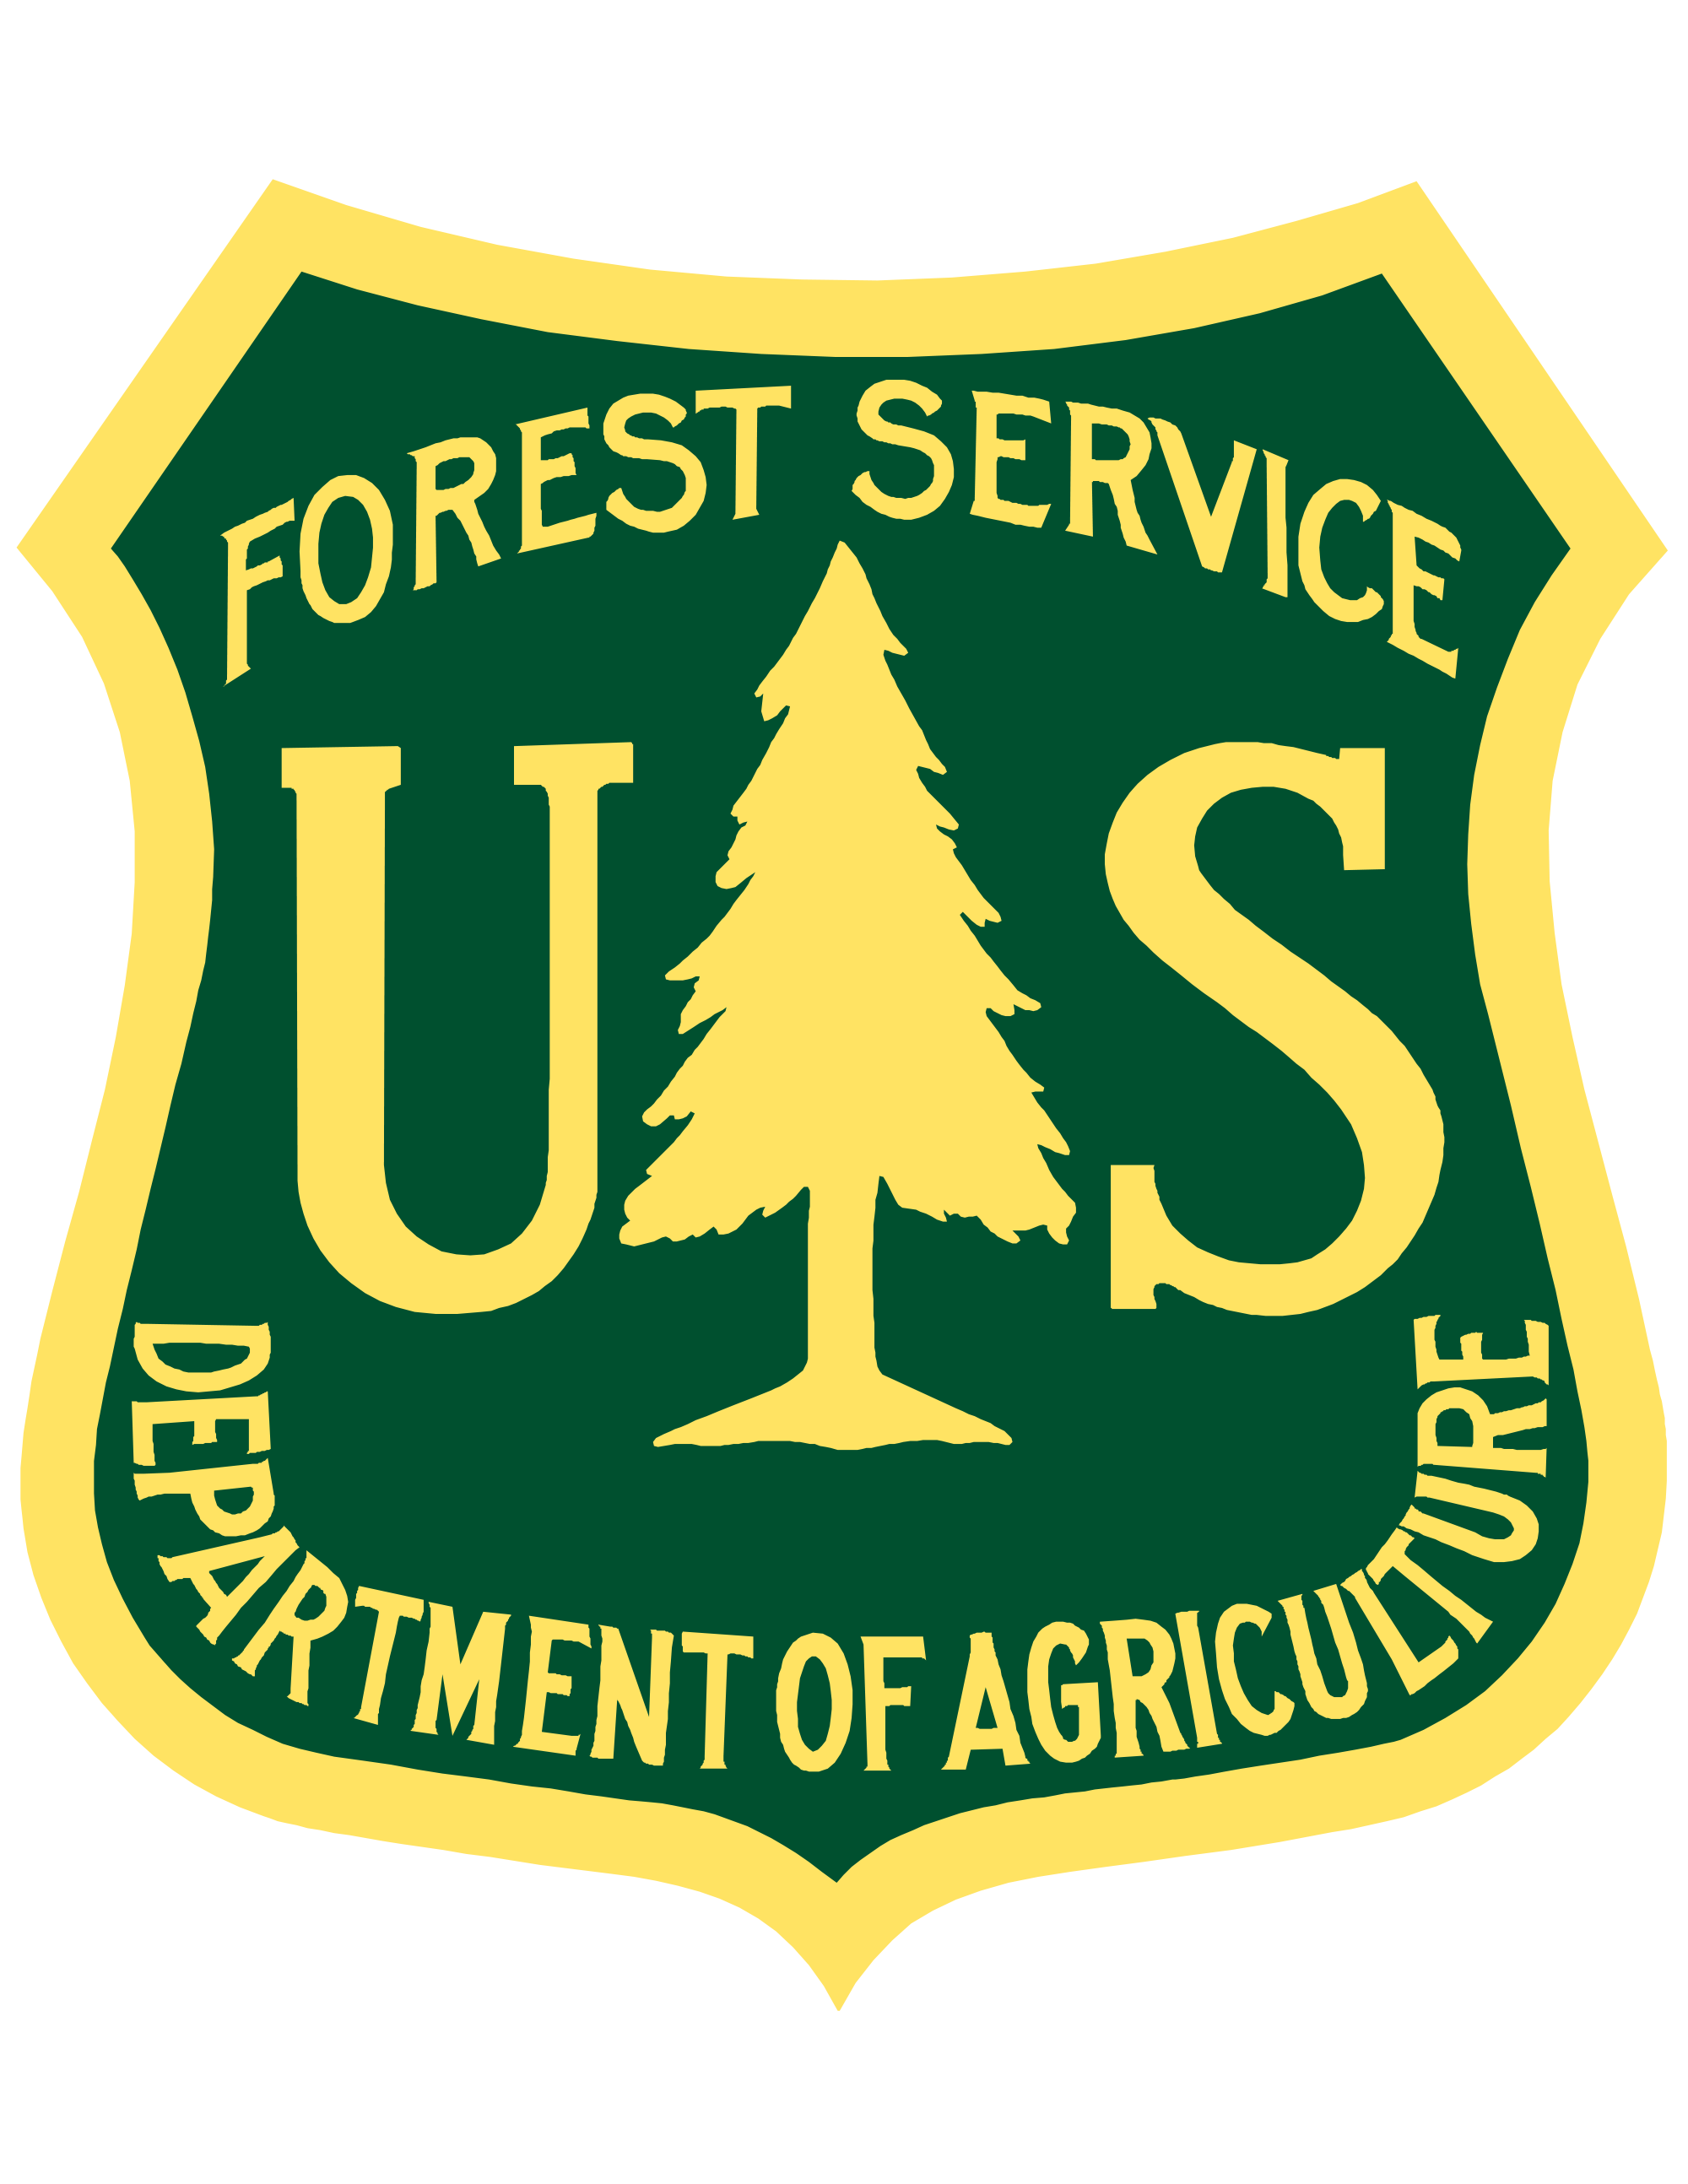 Green and yellow Forest Service shield.